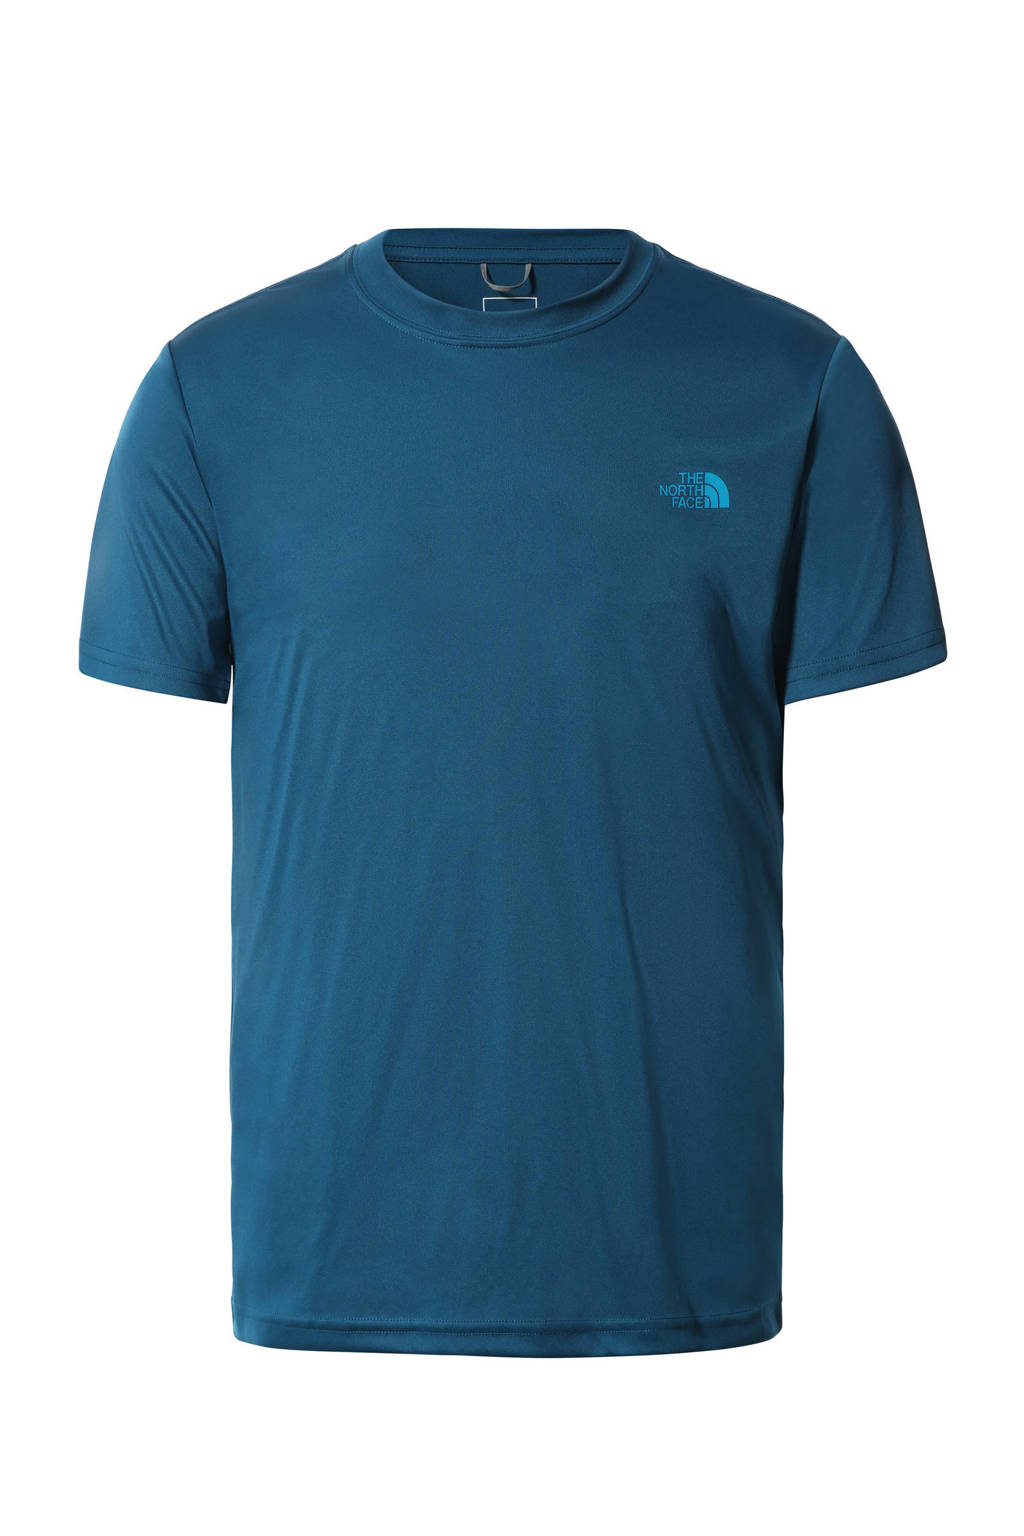 The North Face T-shirt Reaxion Amp donkerblauw, Donkerblauw